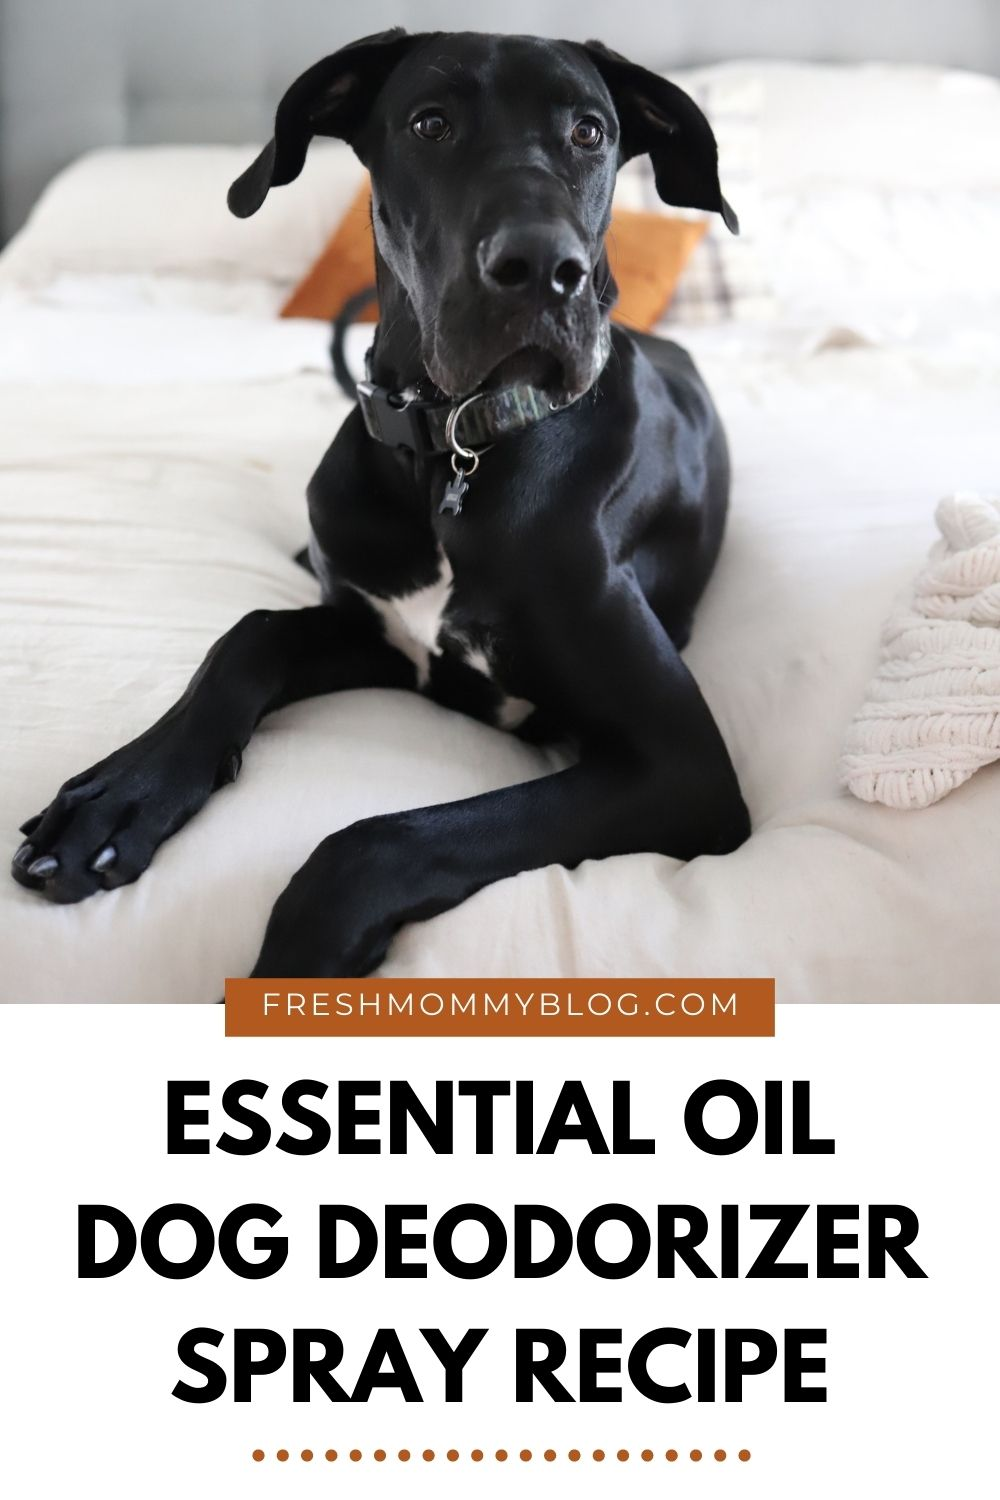 Essential Oils Safe for Dog Deodorizer Spray |Dog Deodorizer Spray by popular Florida lifestyle blog, Fresh Mommy Blog: Pinterest image of a black Great Dane dog sitting on a bed with white bedding.